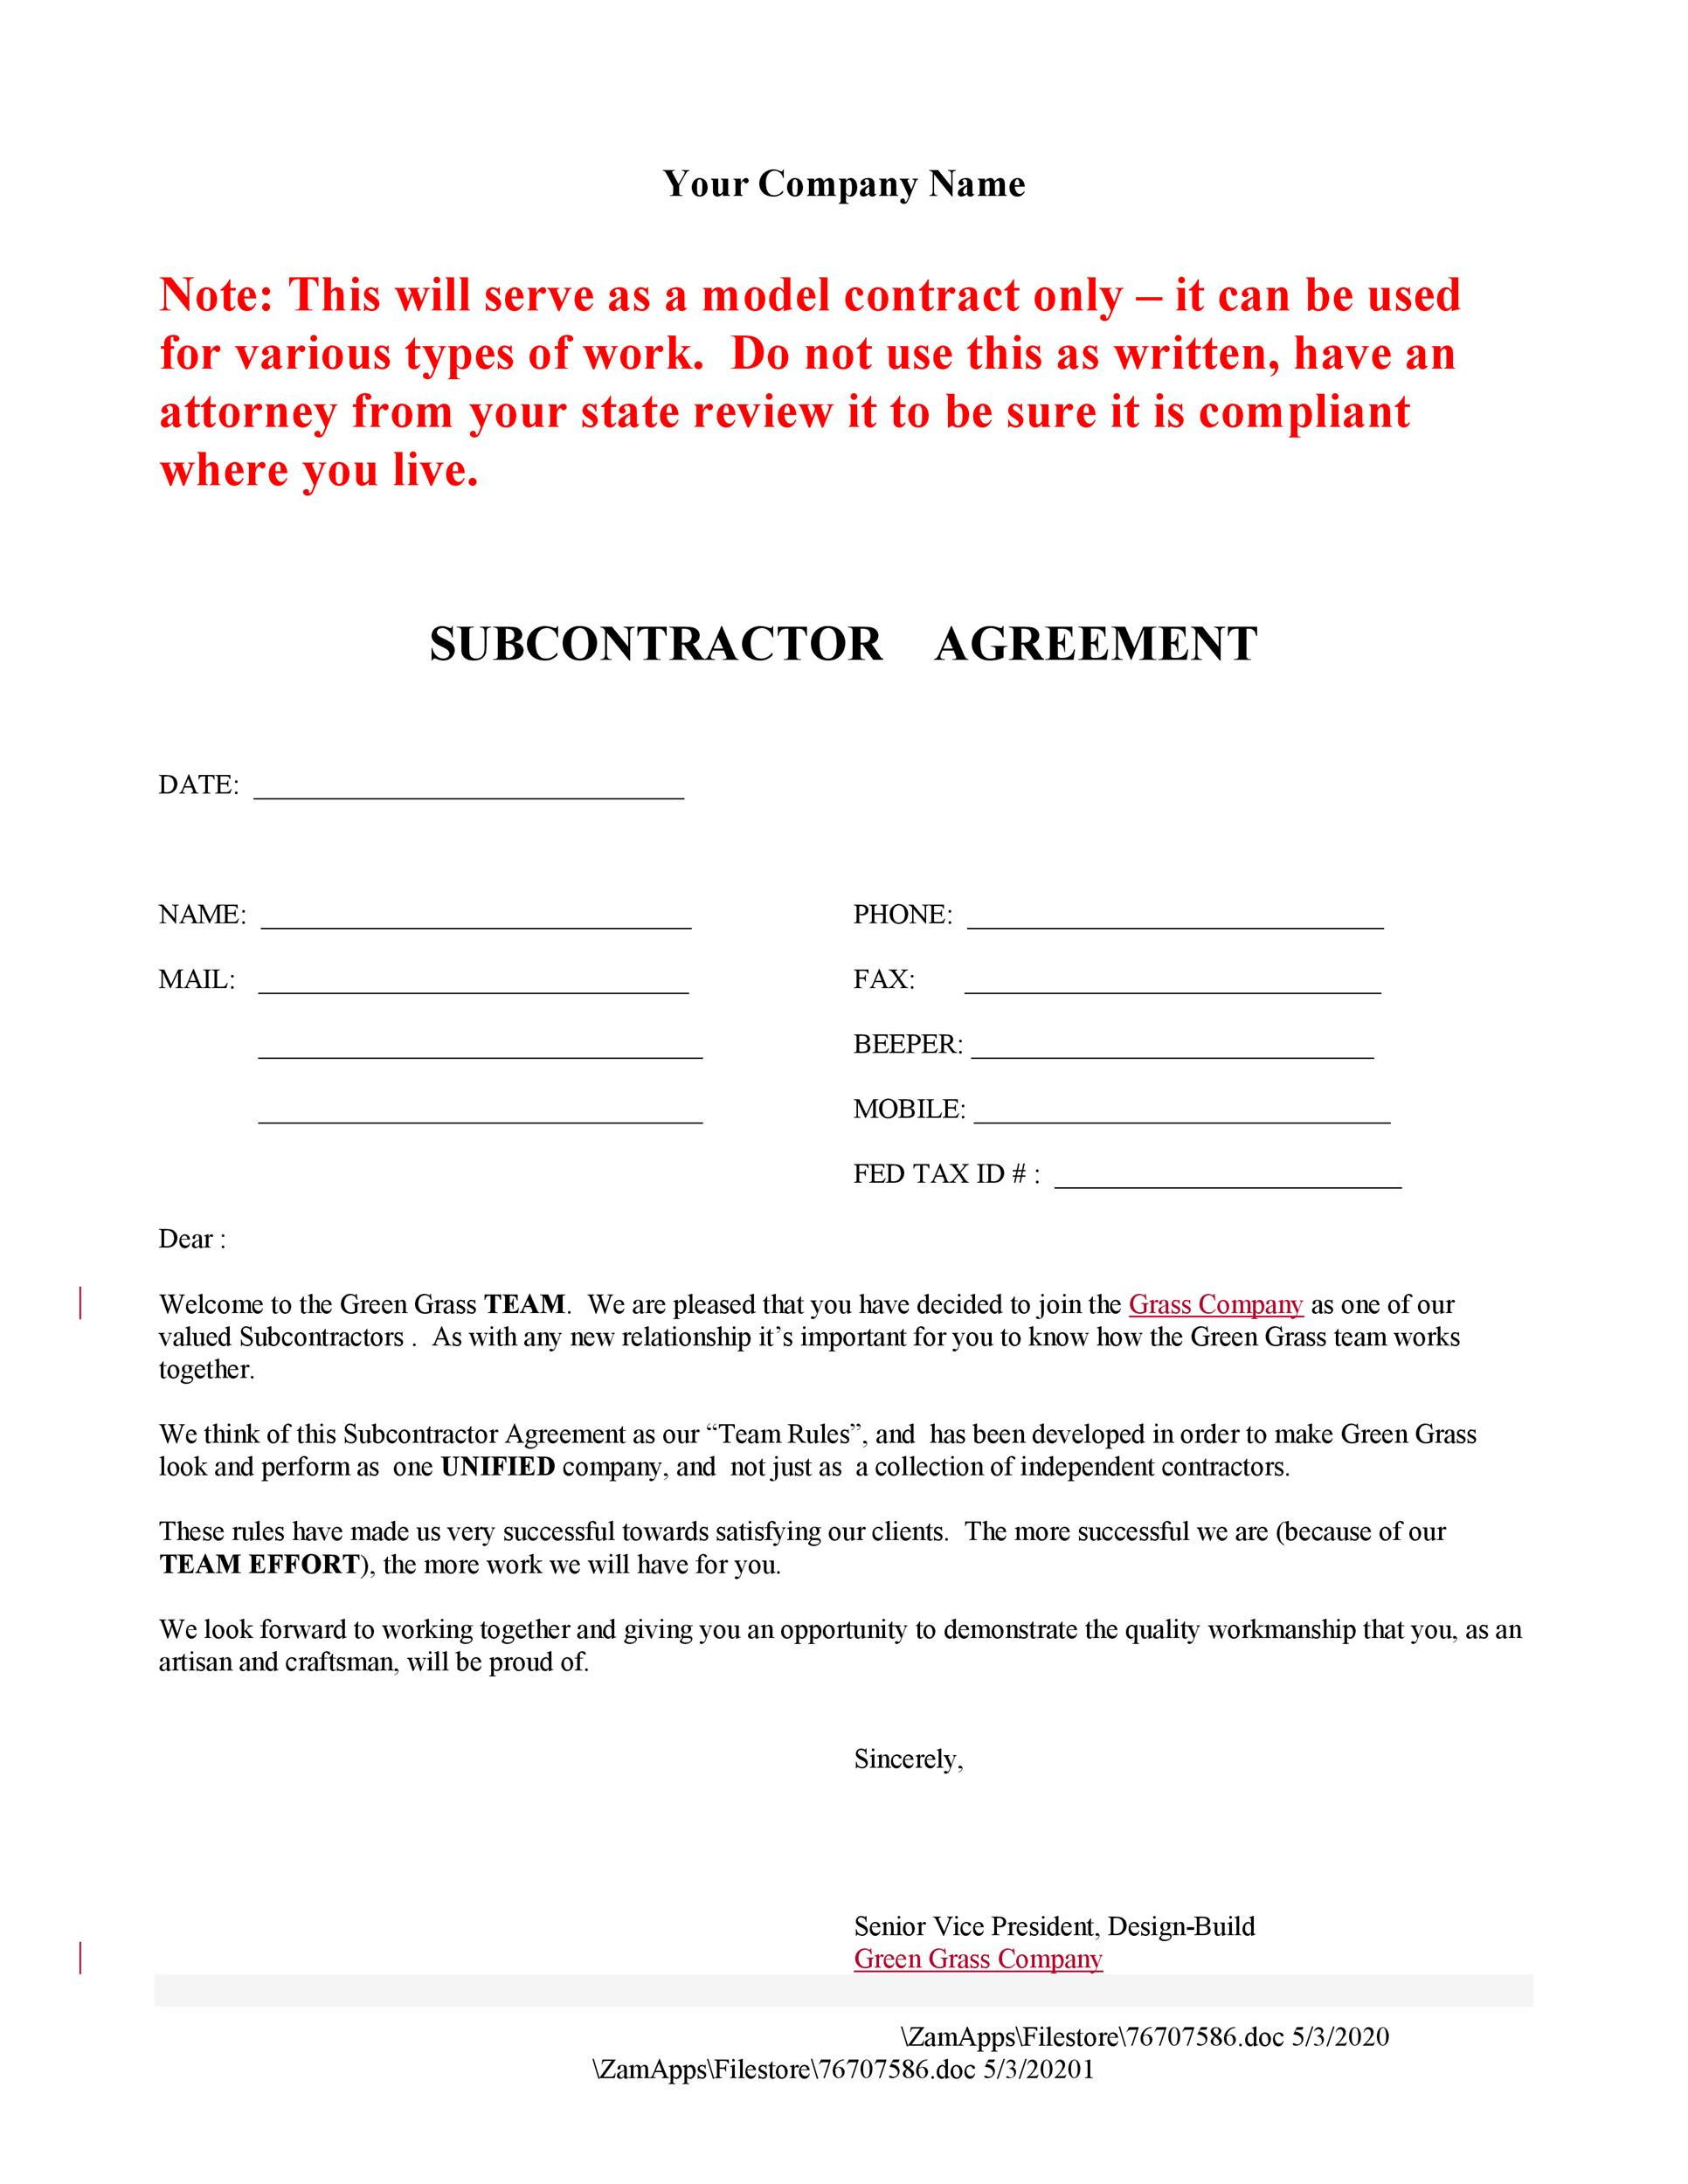 Subcontractor Agreement Selol Ink